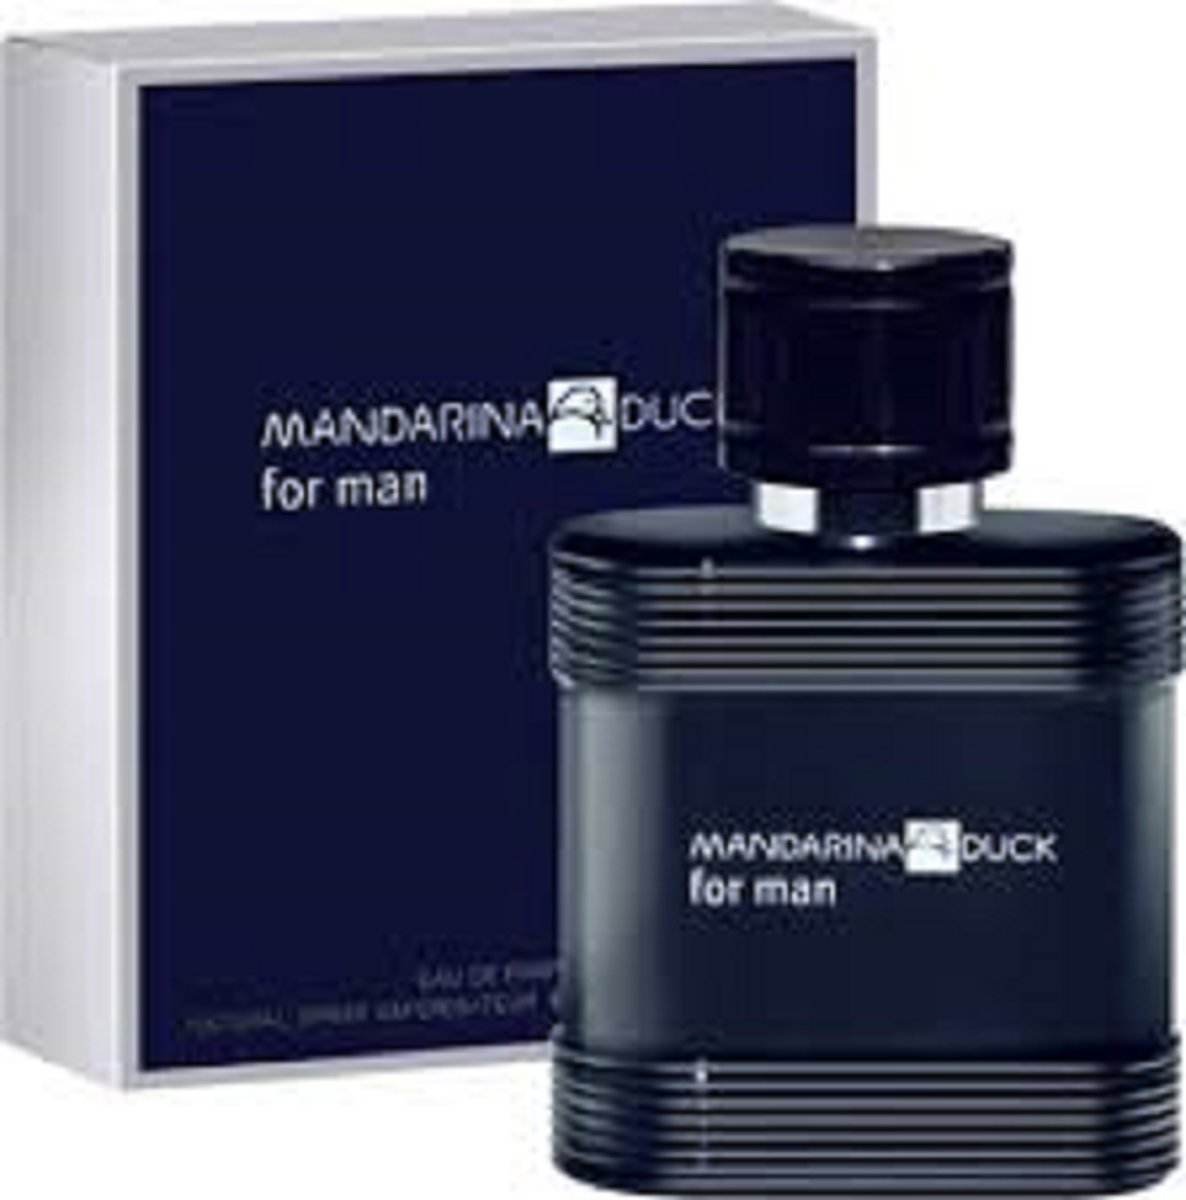 Mandarina Duck for Man Eau de Toilette 100ml